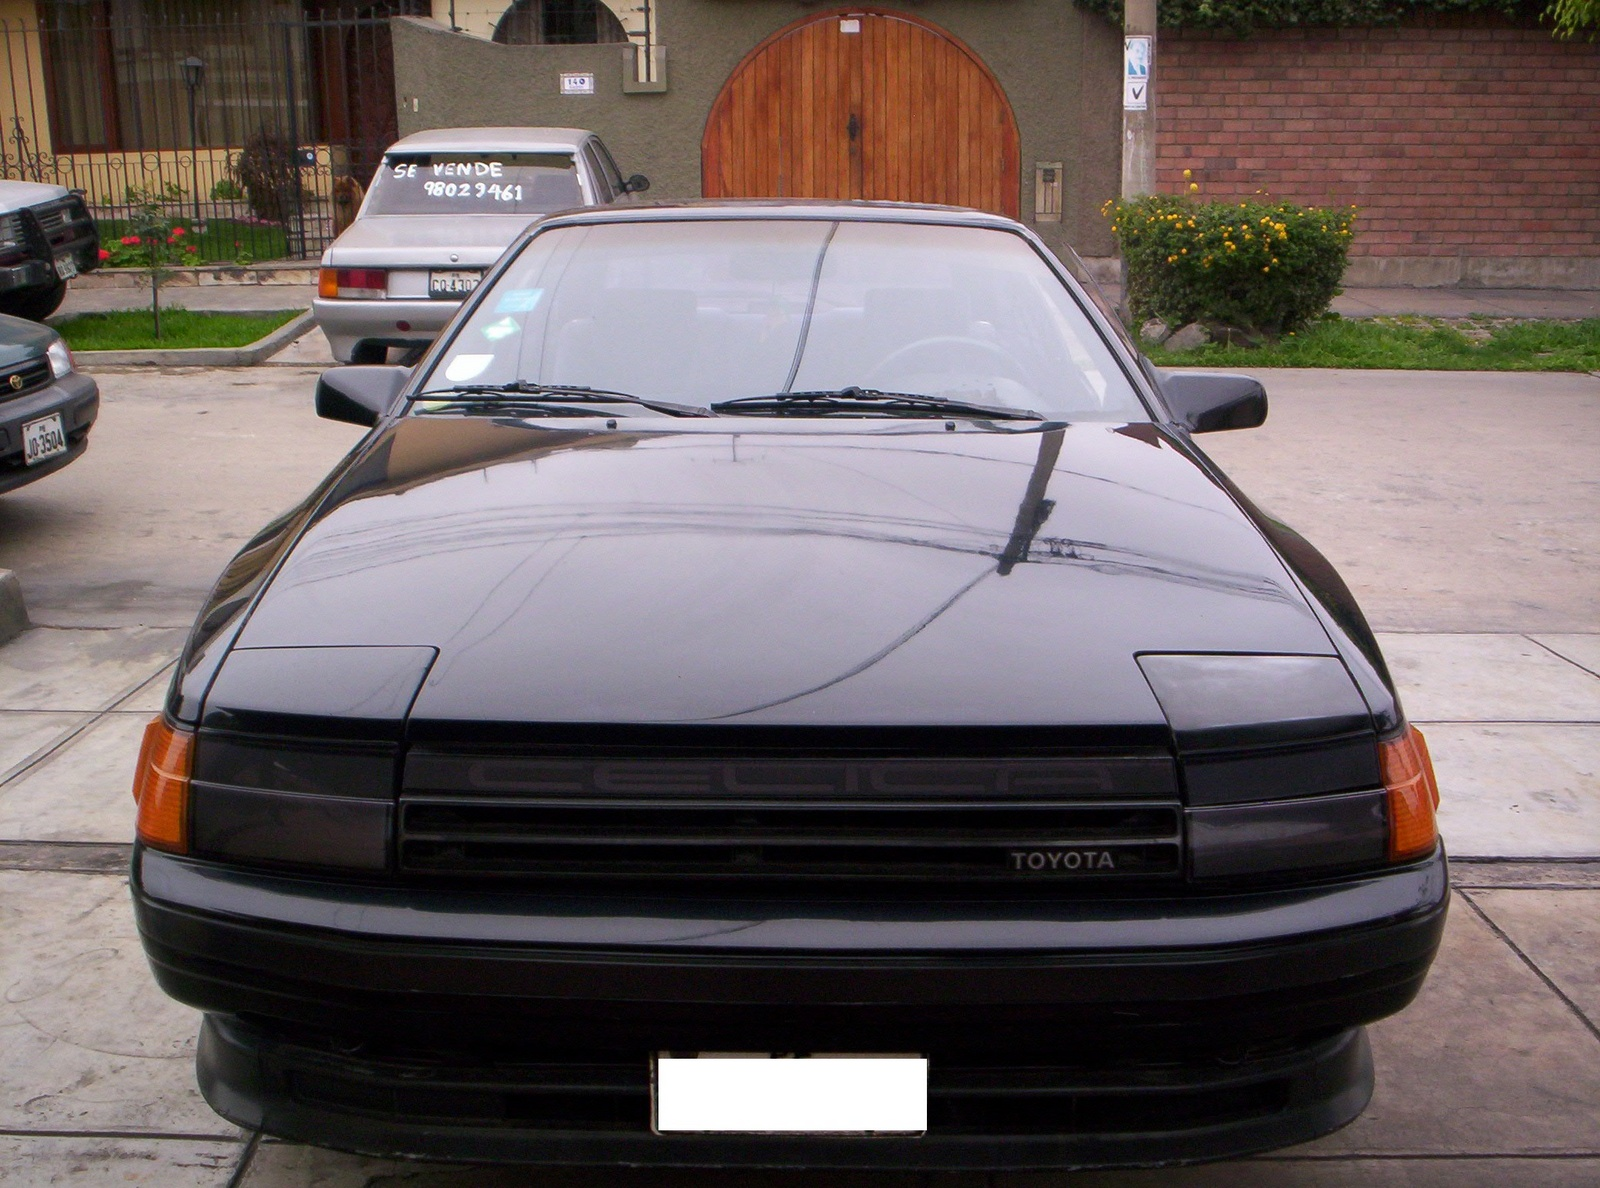 Picture of 1986 Toyota Celica GT coupe, exterior